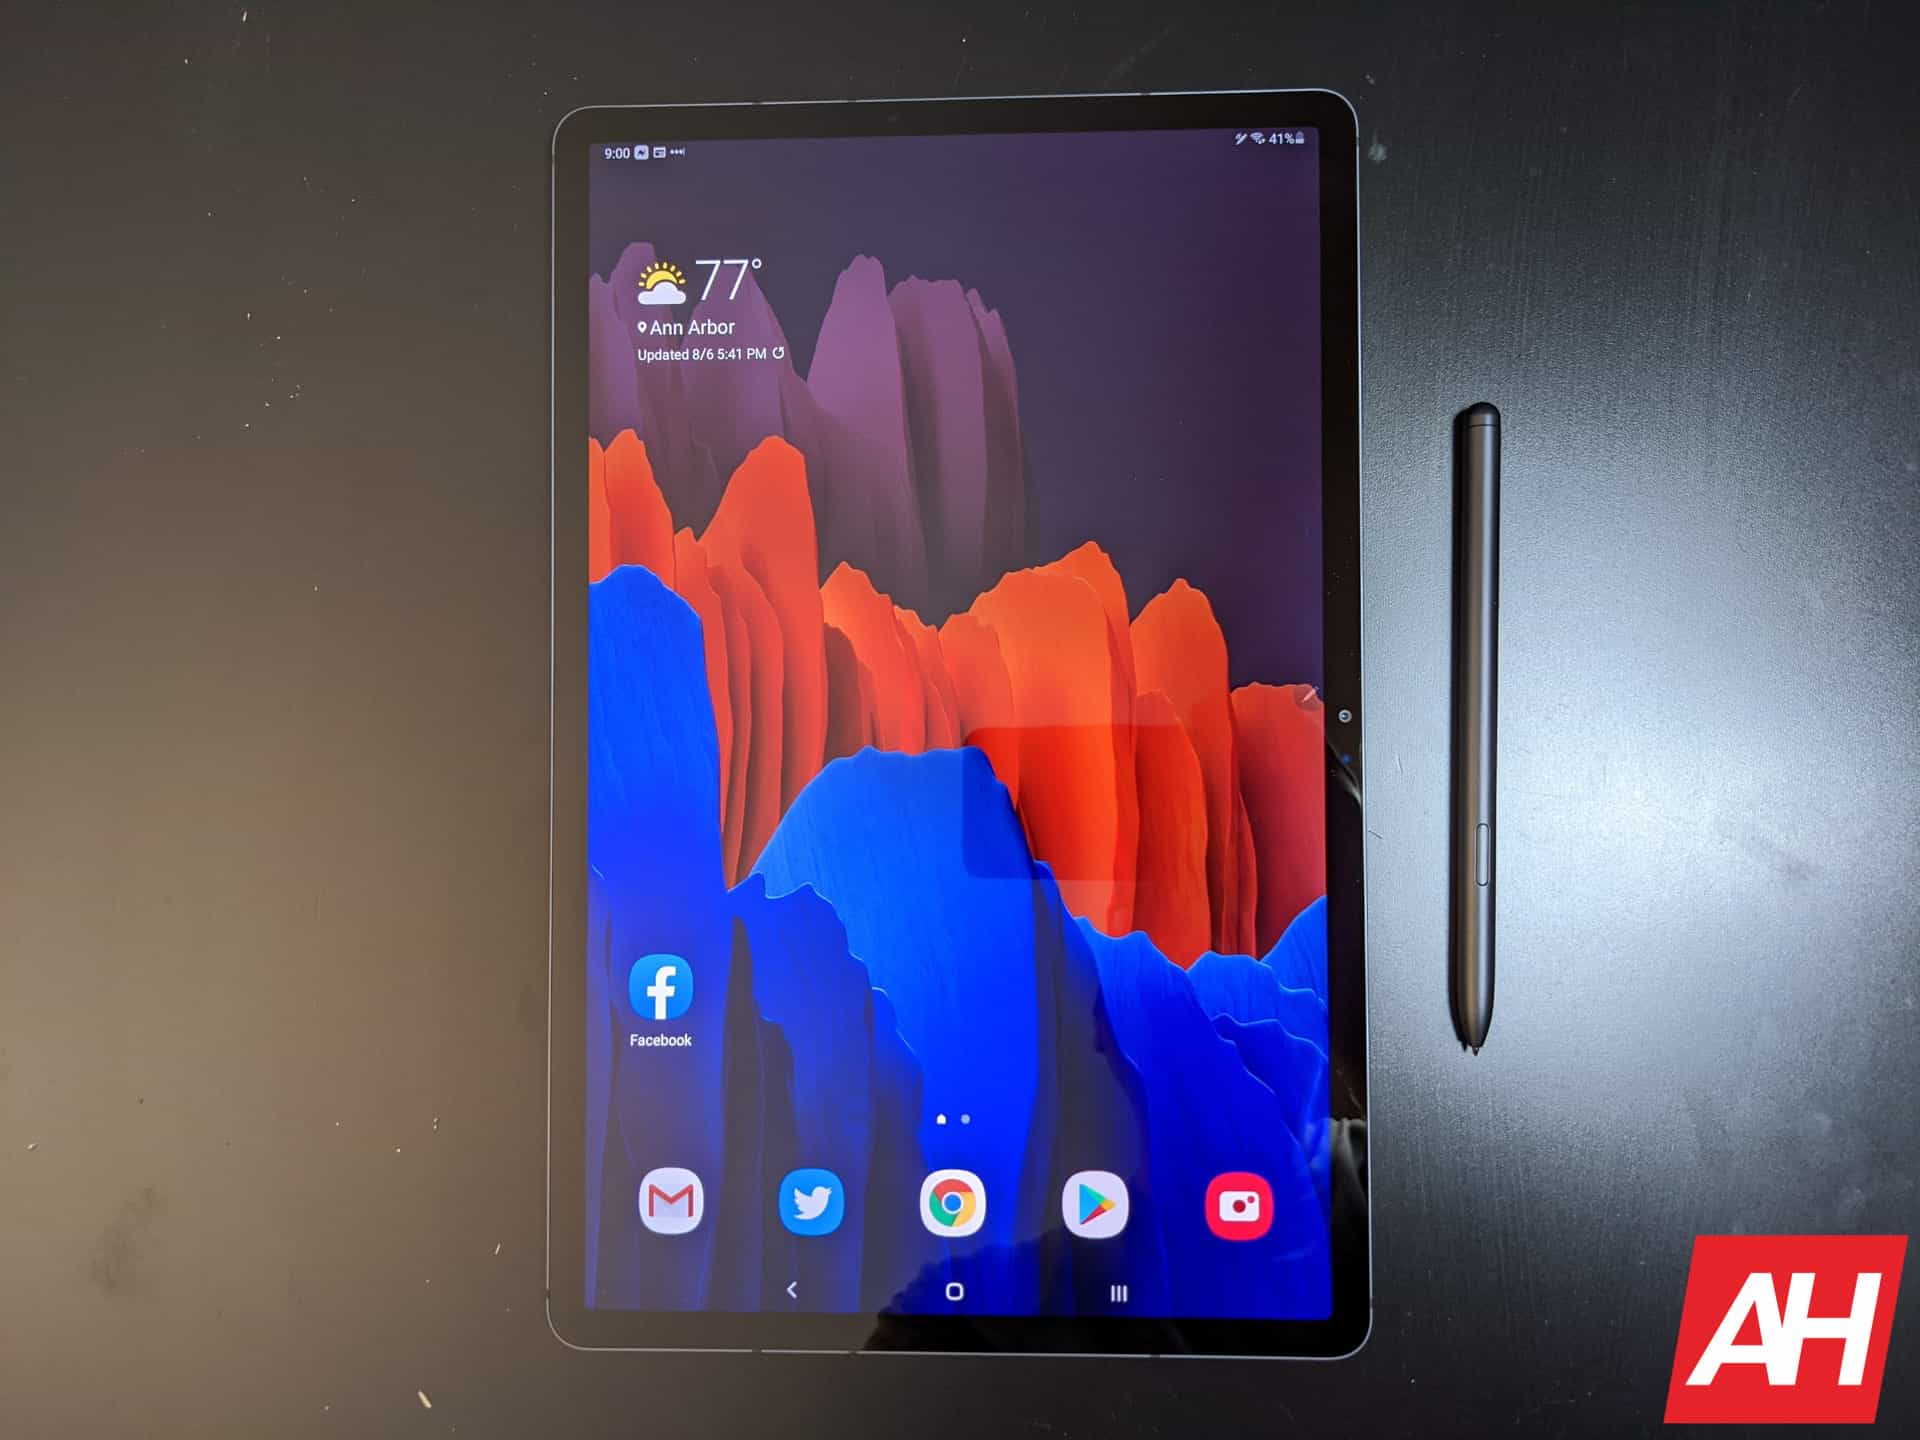 Galaxy Tab S7 Proves That Great Hardware Can T Overcome Android S Shortcomings